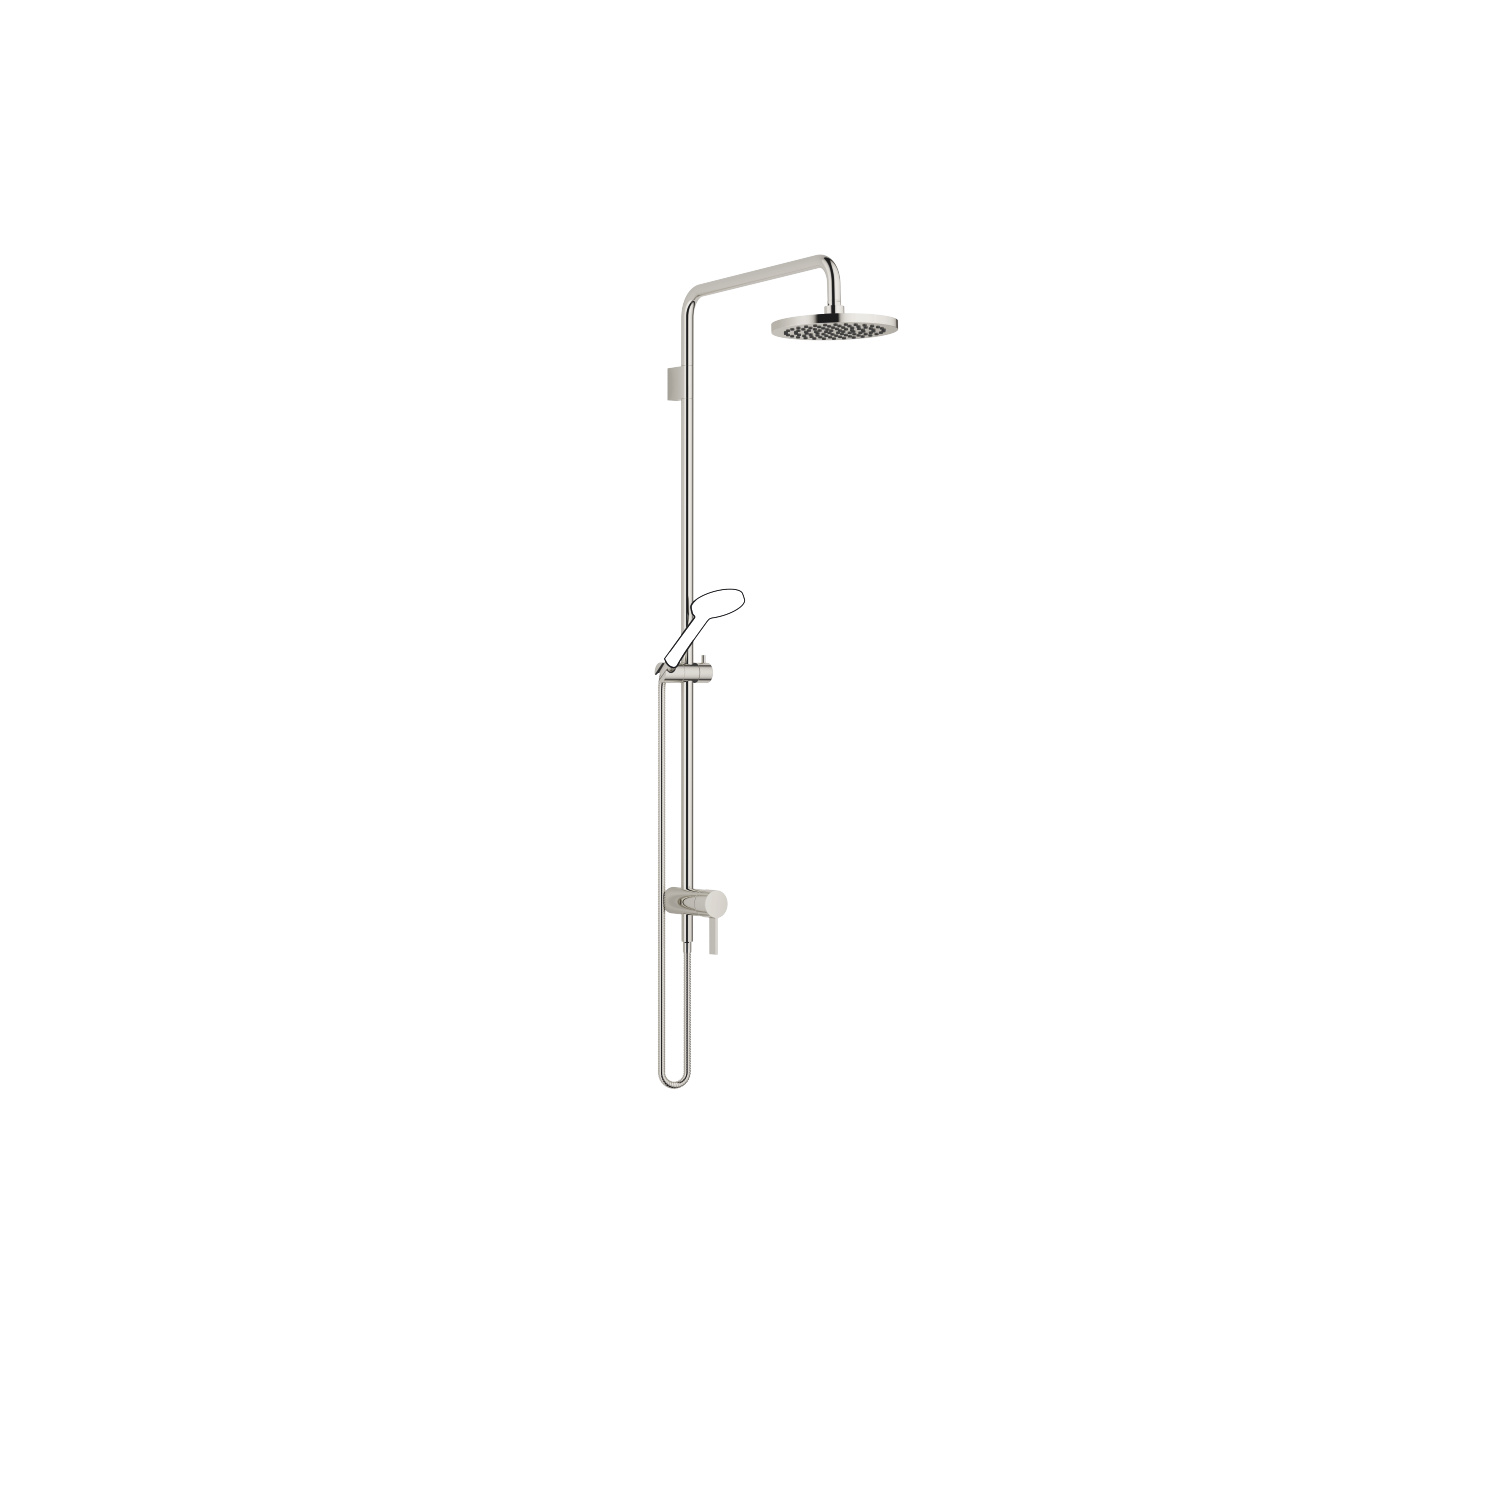 Showerpipe with single-lever shower mixer - platinum